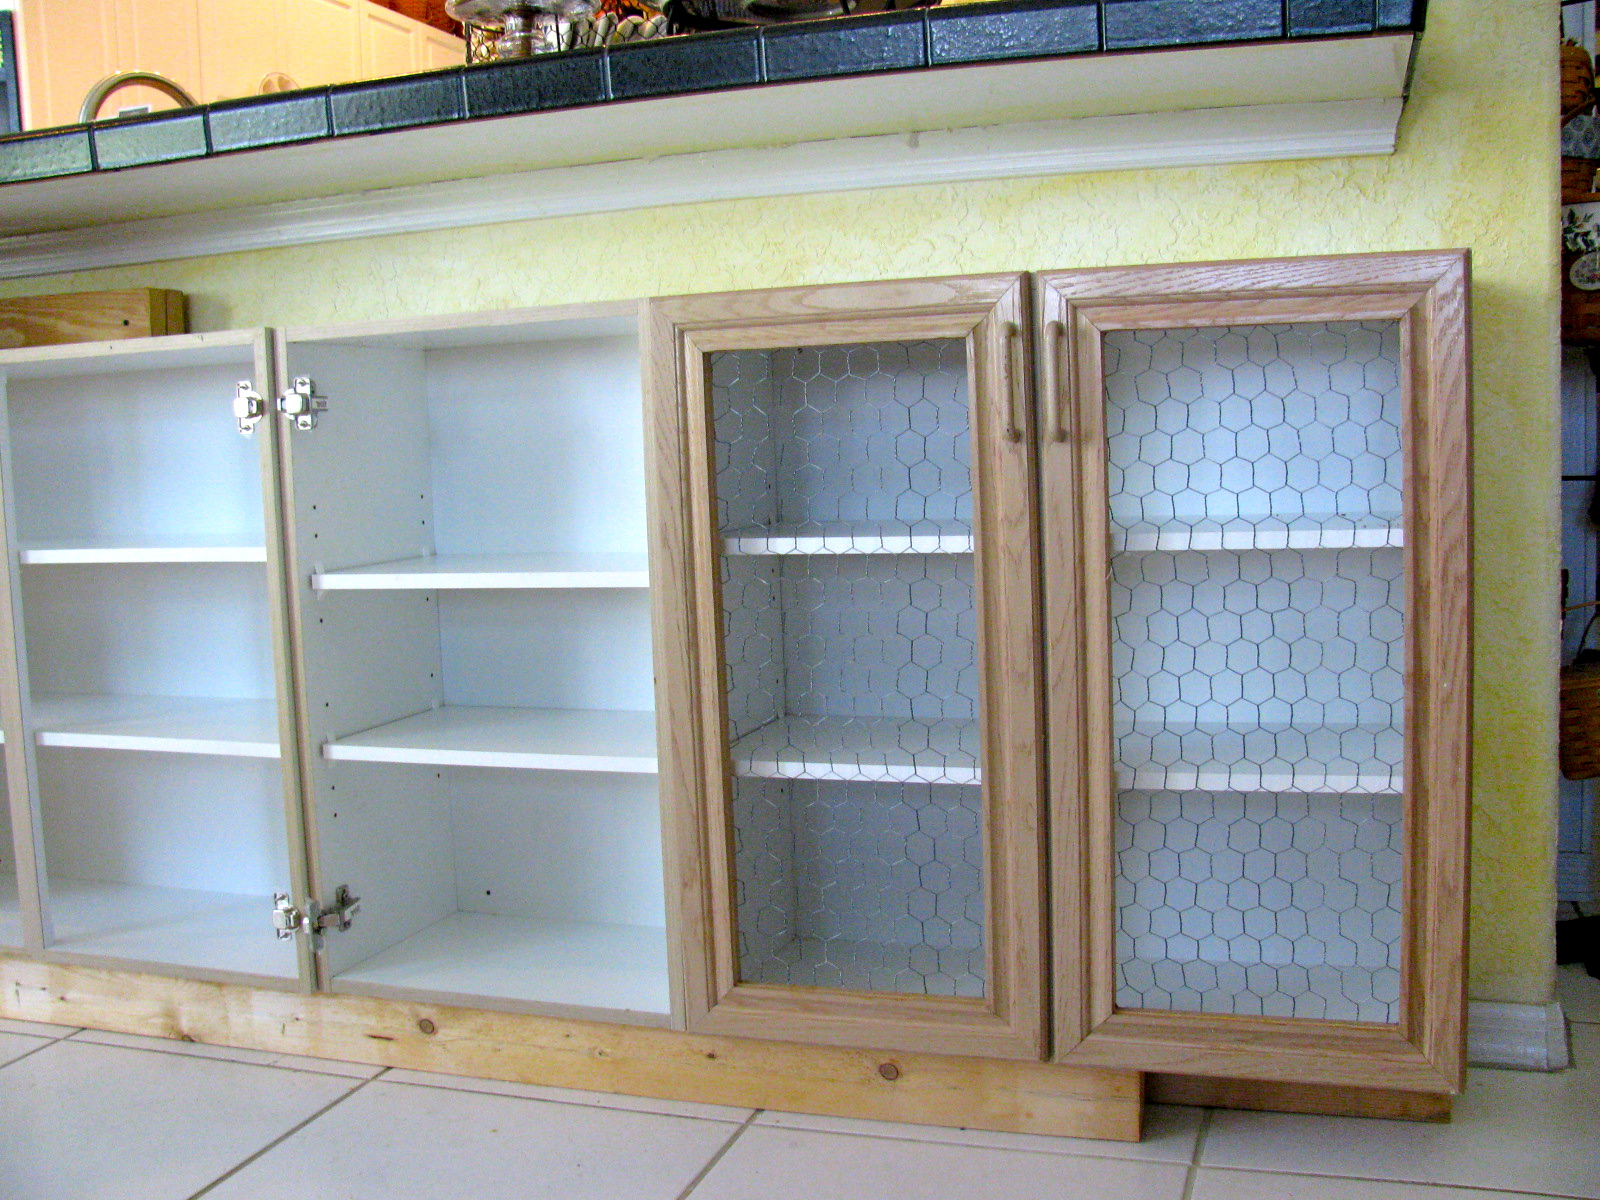 Chicken Wire Kitchen Cabinets - Nagpurentrepreneurs